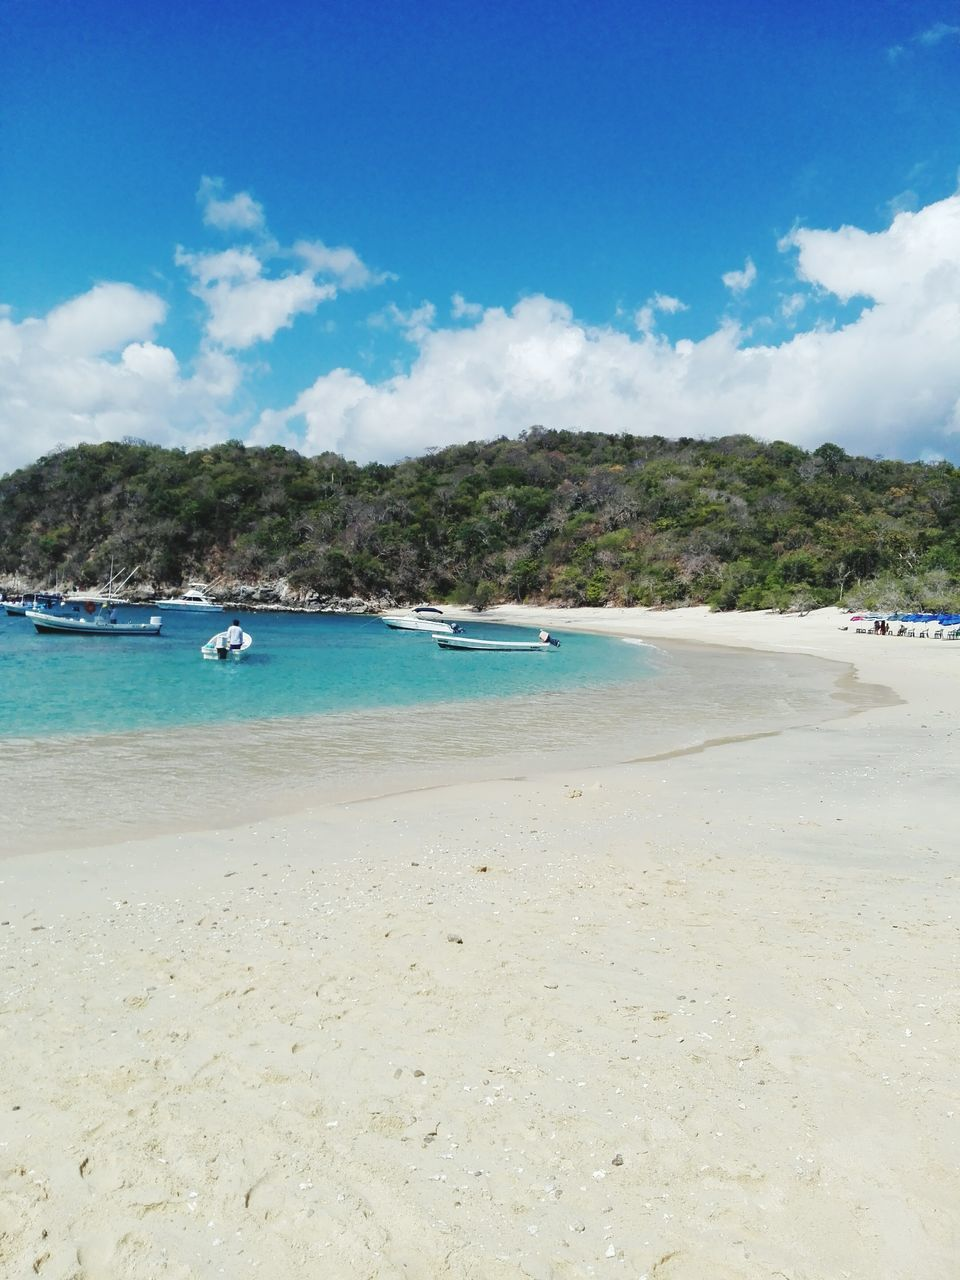 beach, sand, sea, water, sky, shore, cloud - sky, nautical vessel, nature, scenics, beauty in nature, transportation, tranquility, day, tranquil scene, blue, summer, mountain, no people, outdoors, tree, vacations, jet boat